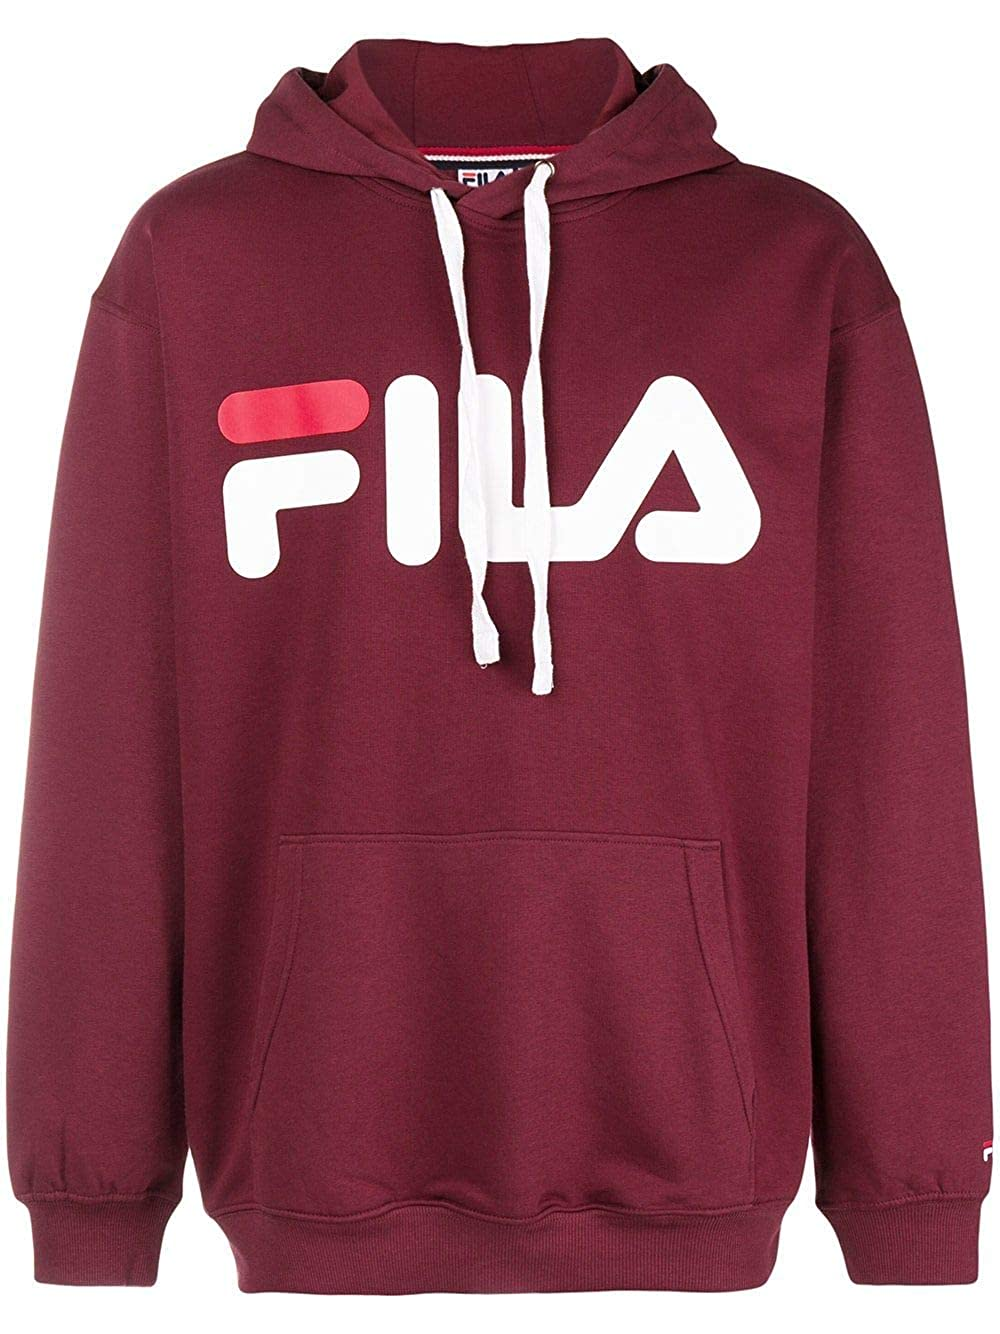 Fila Luxury Fashion Uomo 681462D10 Bordeaux Felpa |: Amazon